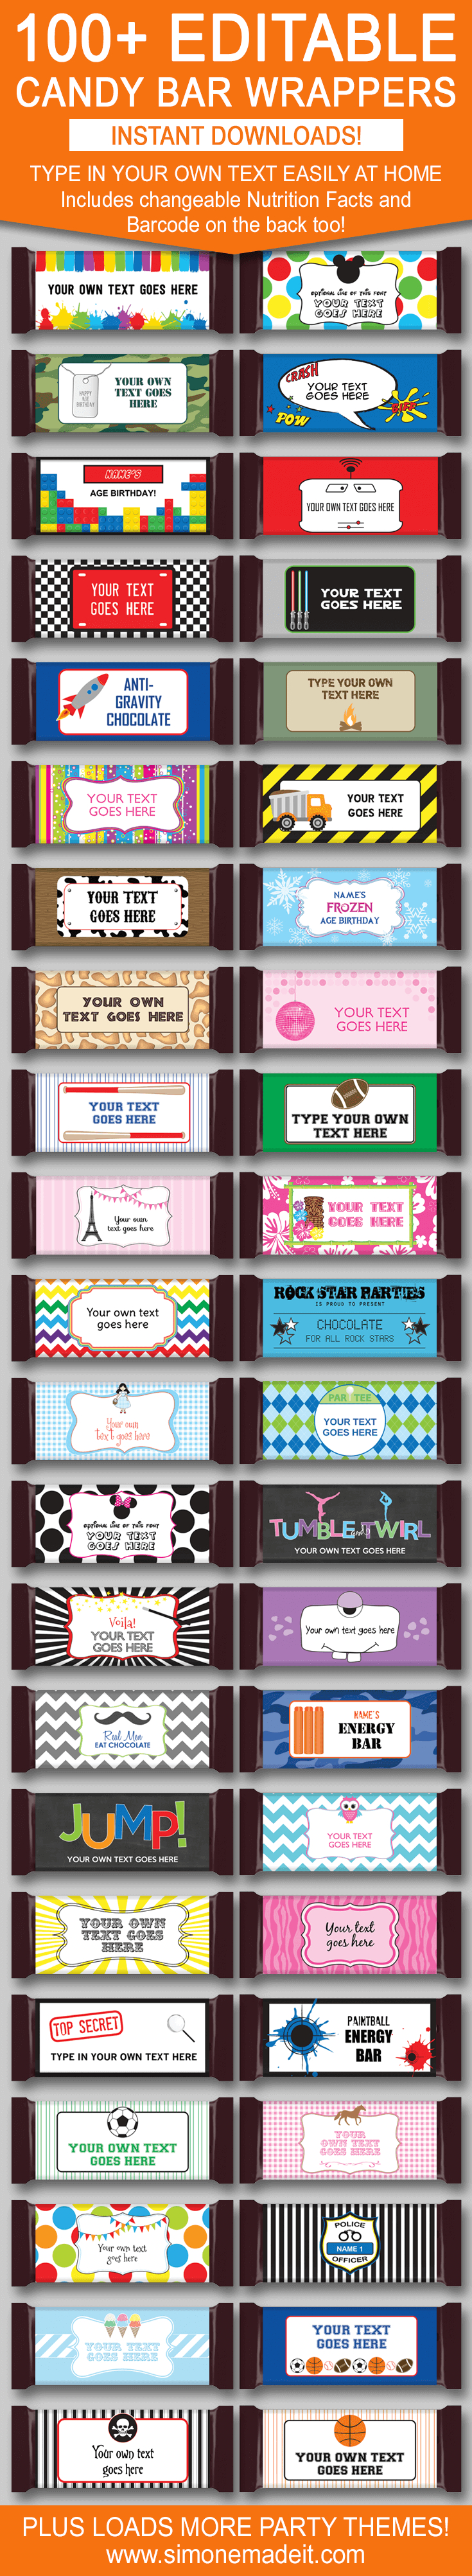 Diy Candy Bar Wrapper Templates – Personalized Candy Bars | Candy - Free Printable Hershey Bar Wrappers